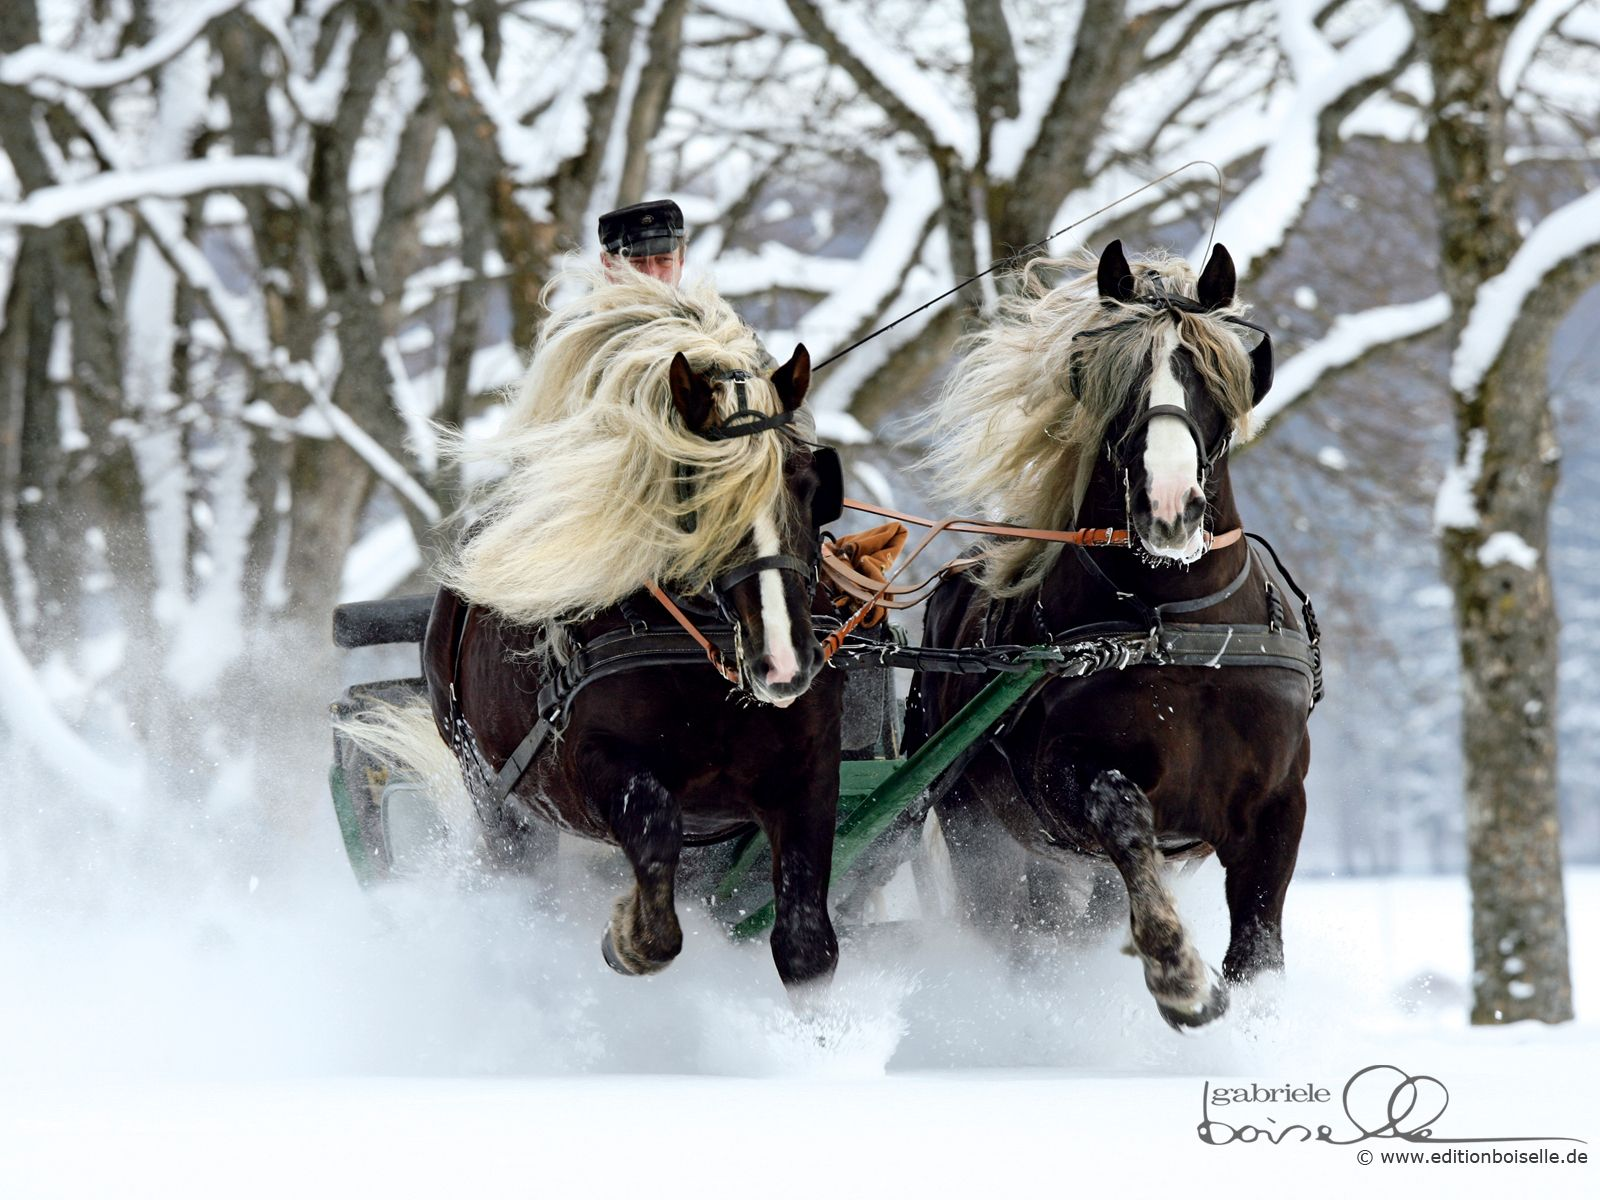 Simple Wallpaper Horse Winter - be8bf2eec0d67bc98c8abcad2541fcdf  Pictures_93628.jpg